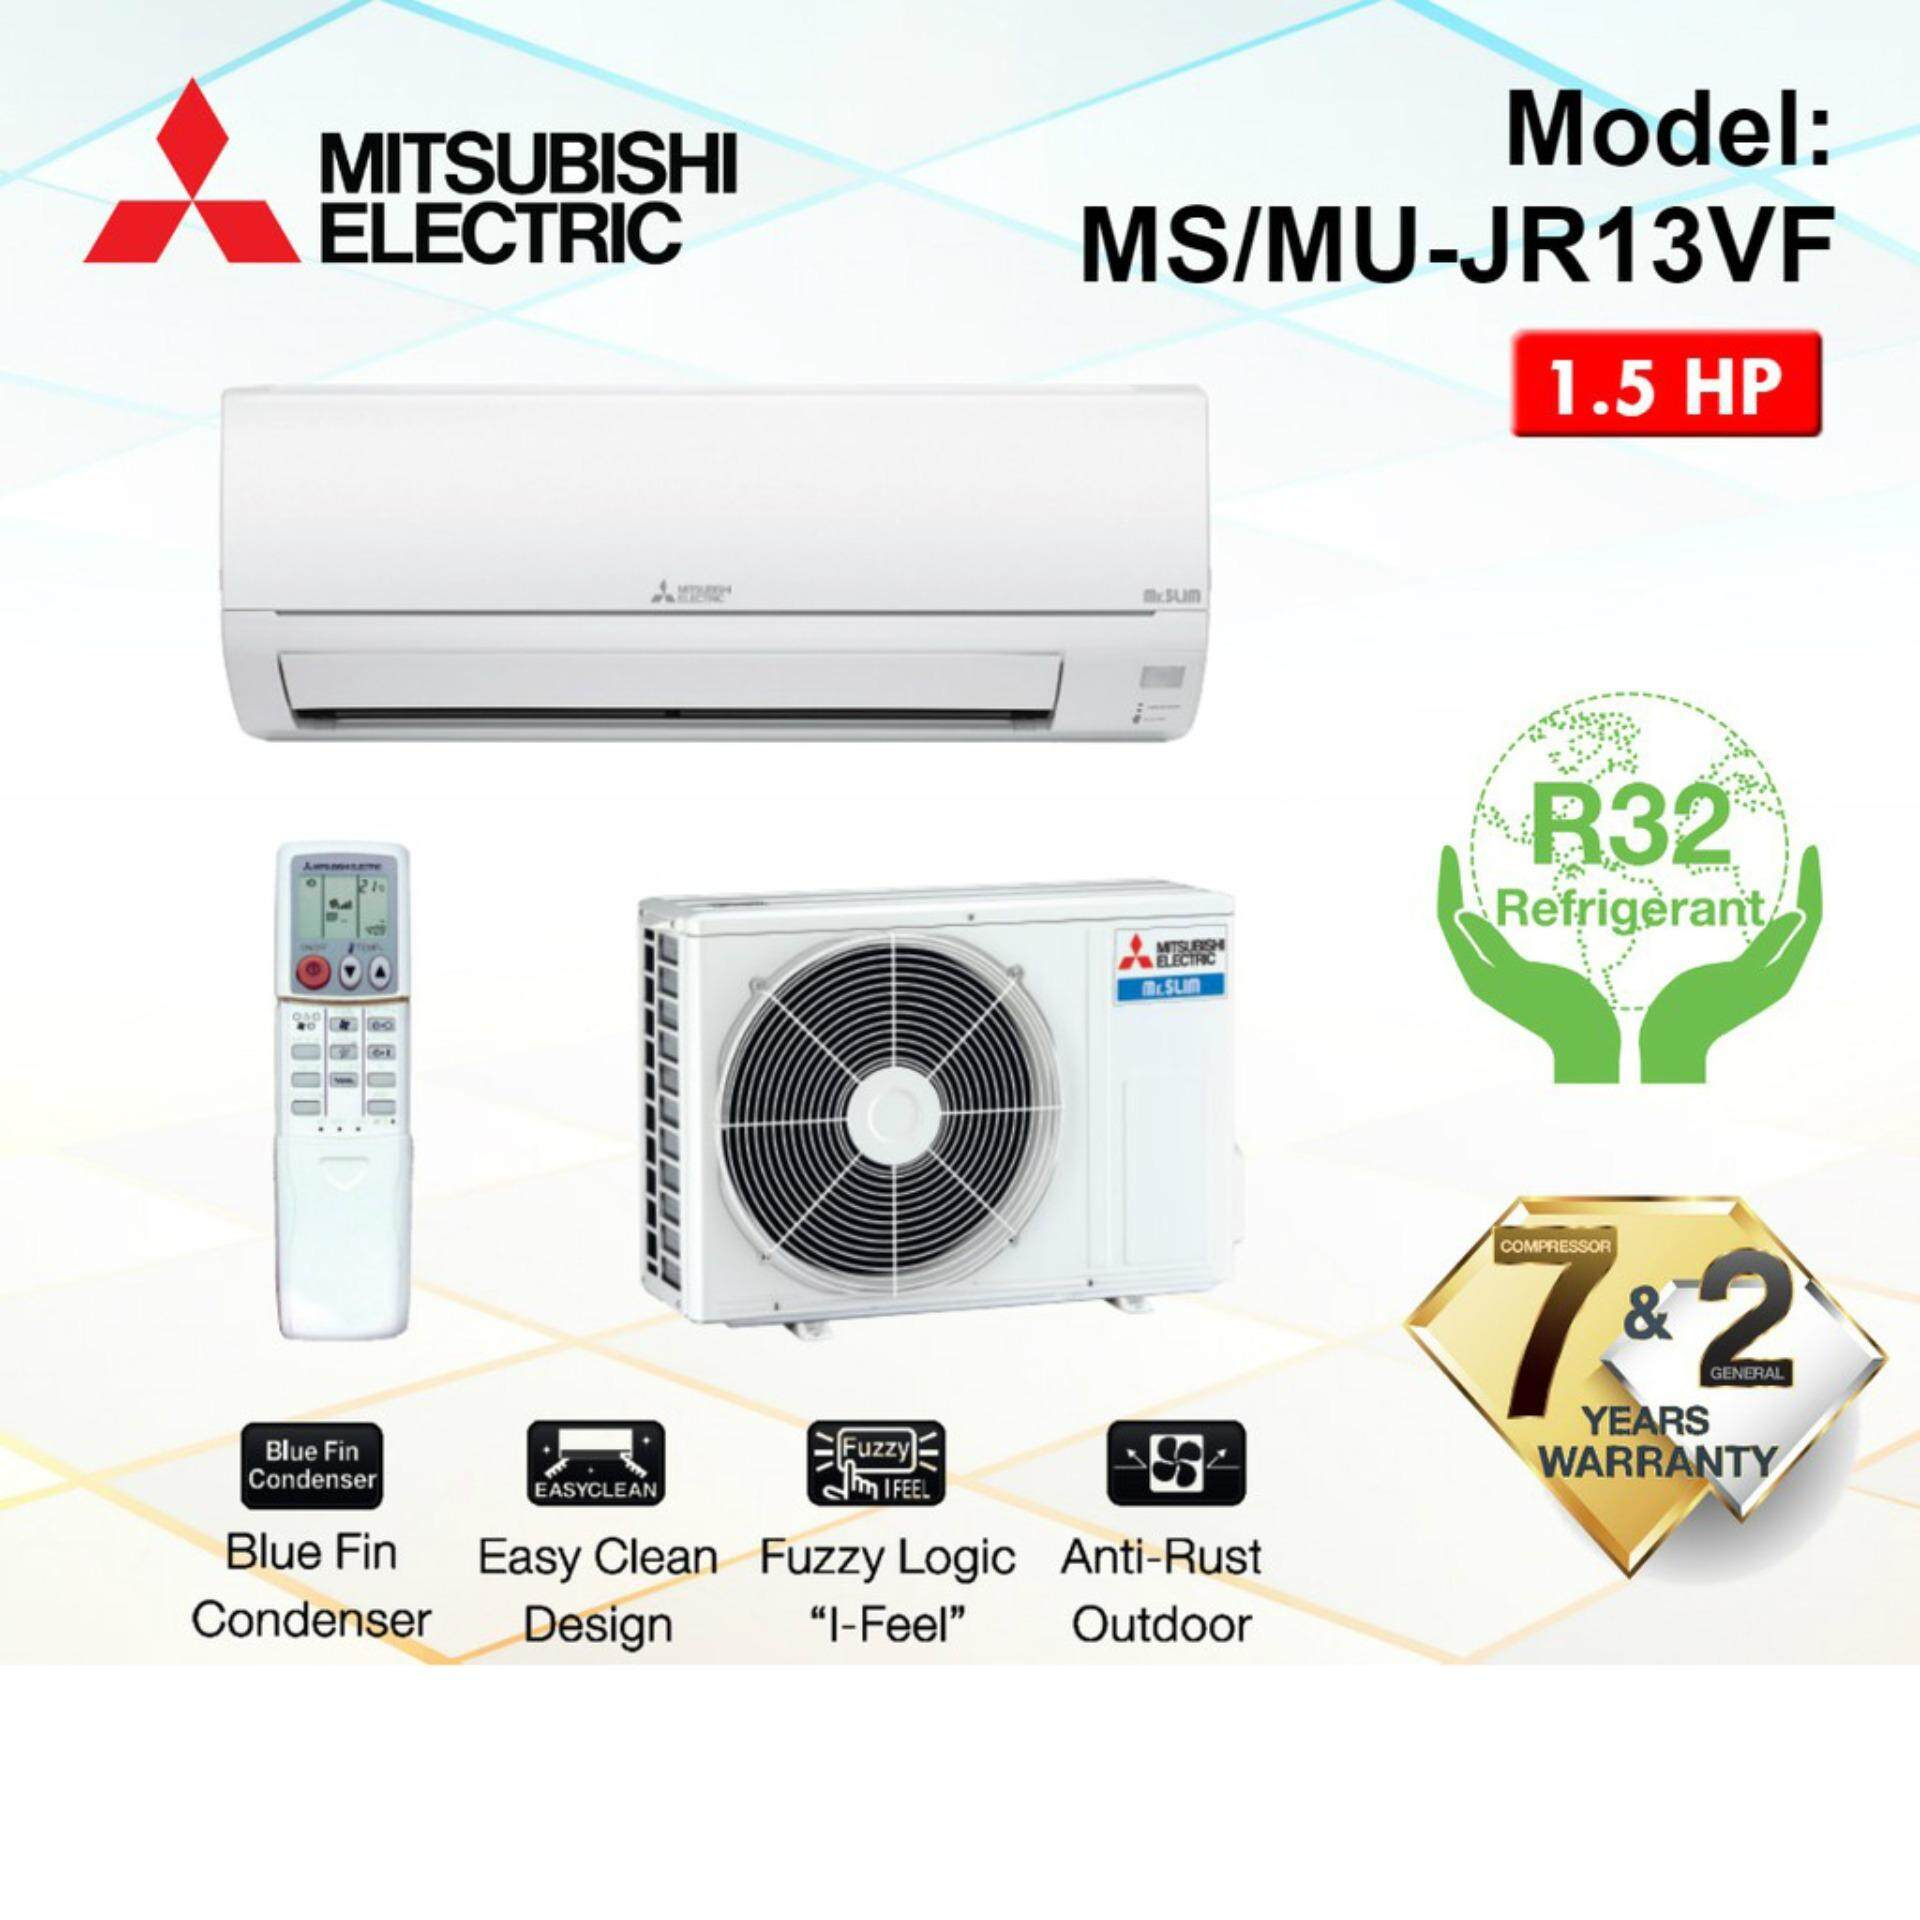 Mitsubishi Air Conditioner With Non Inverter , Easy Clean And Dual Barrier Coating MIT-MS-JR13VF-INDOOR